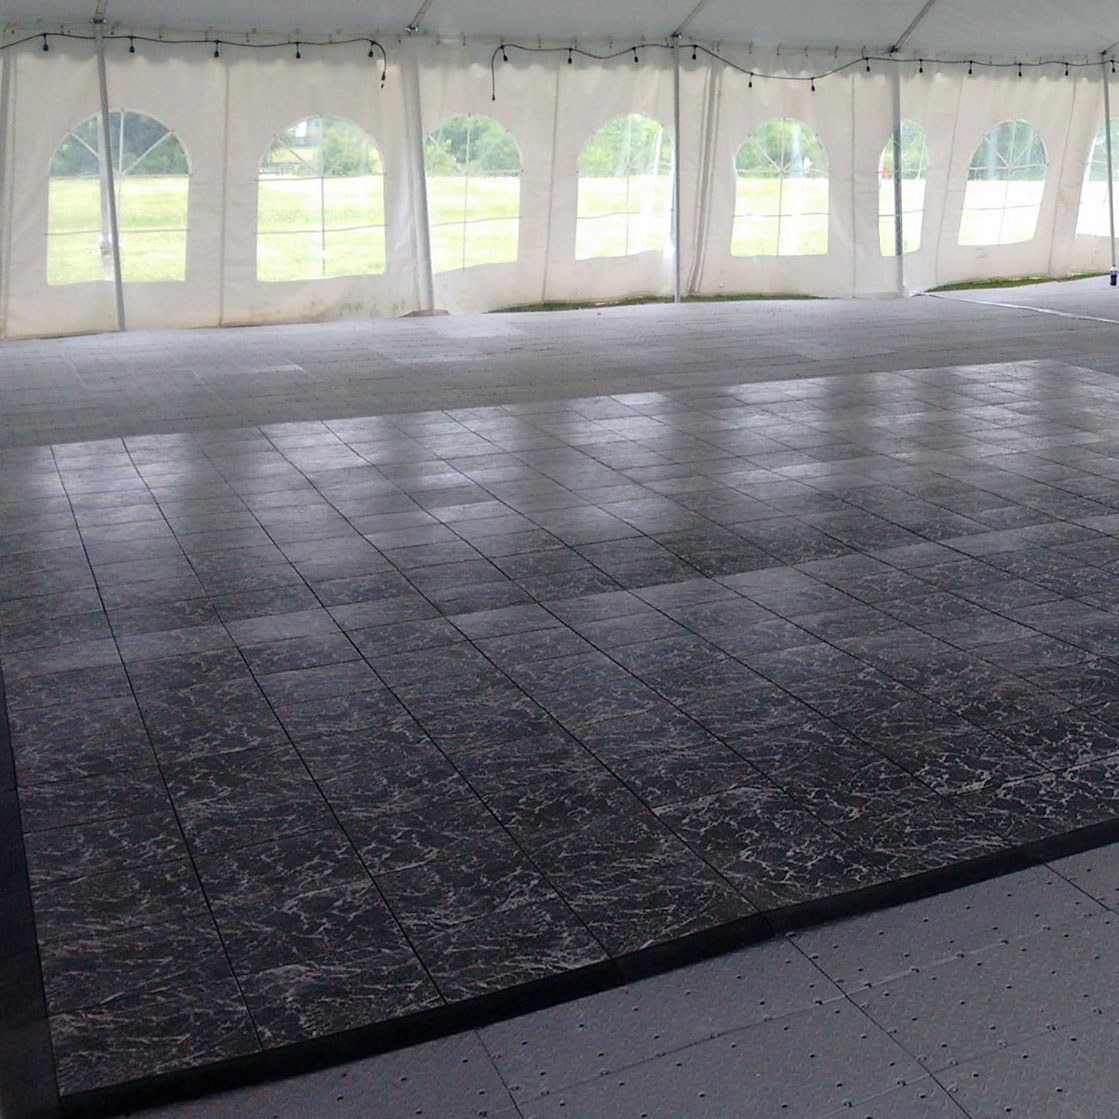 Basic Black Marble over FastDeck flooring at a tent event